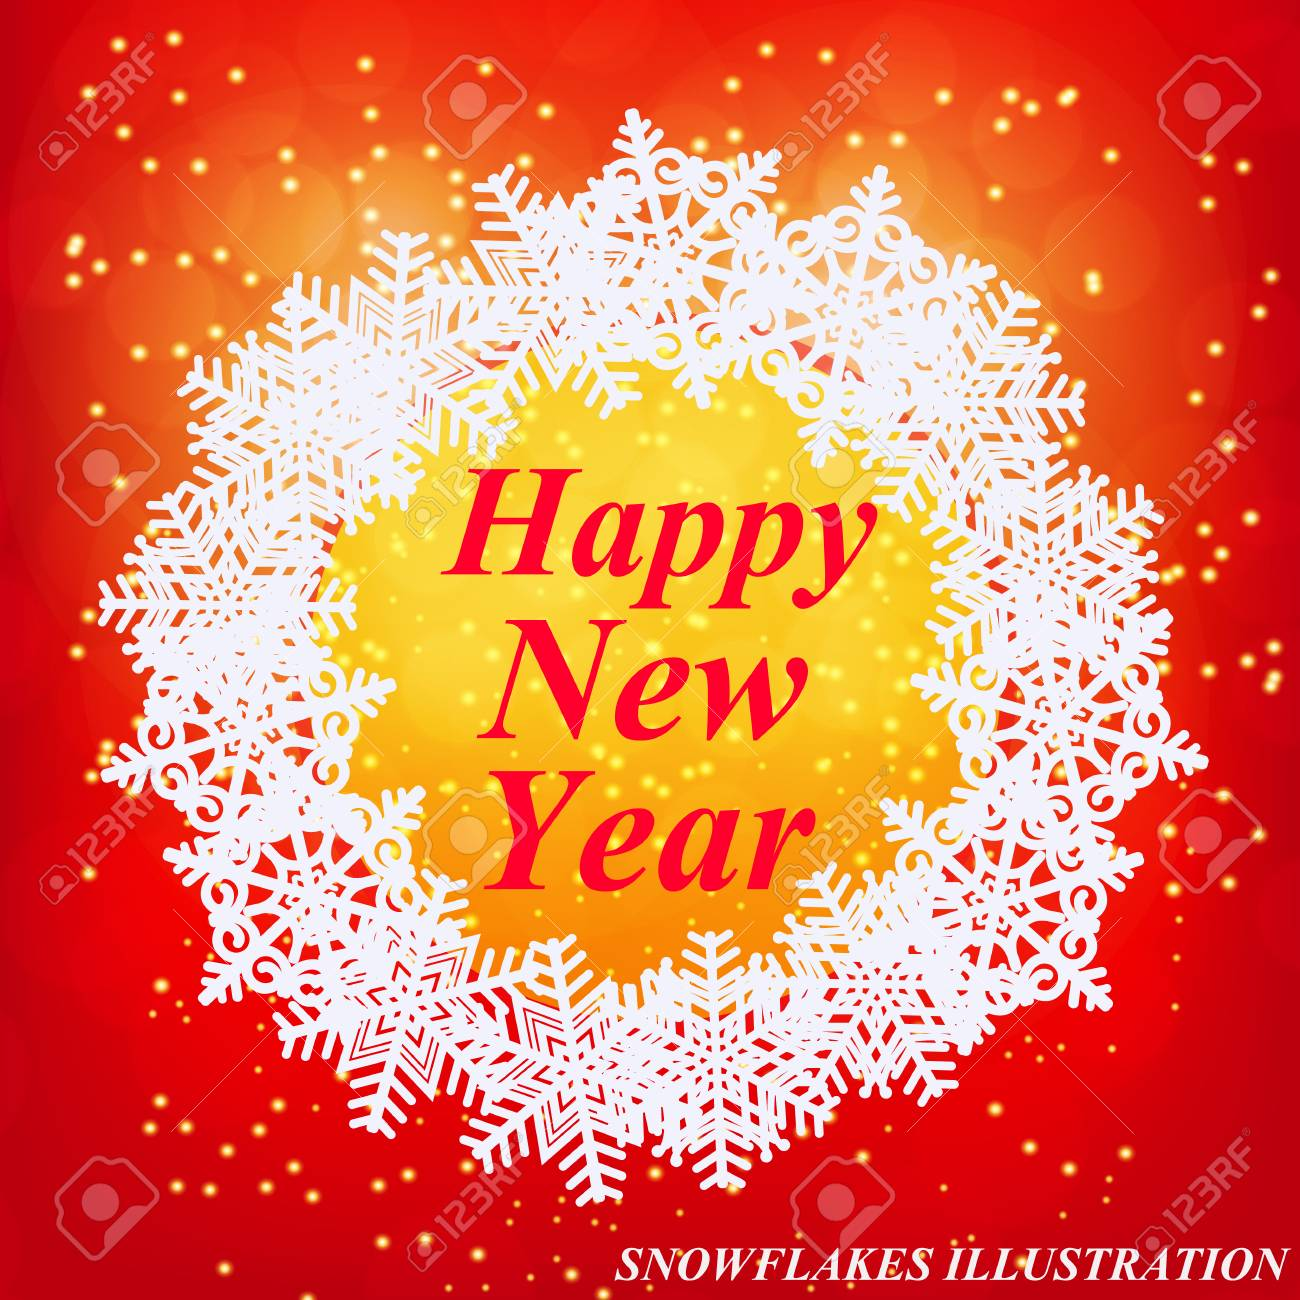 happy new year greeting card new year template brightly colorful illustration red illustration